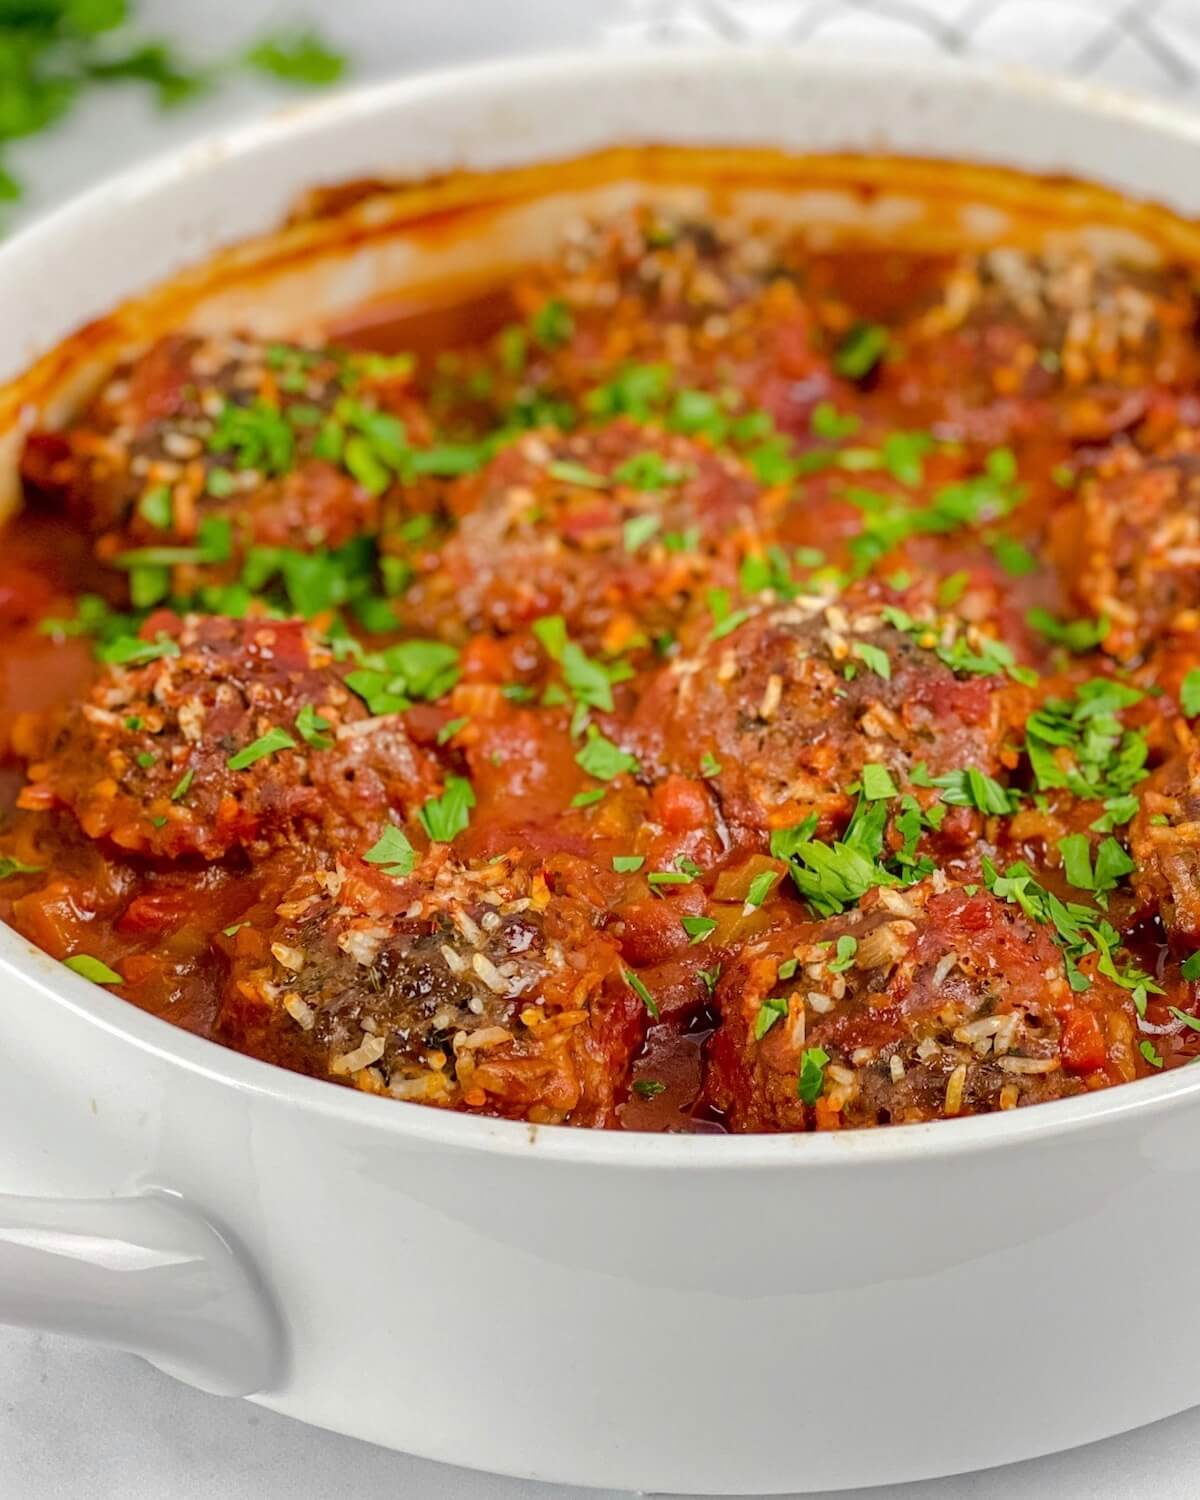 porcupine meatballs with rice in tomato sauce with parsley